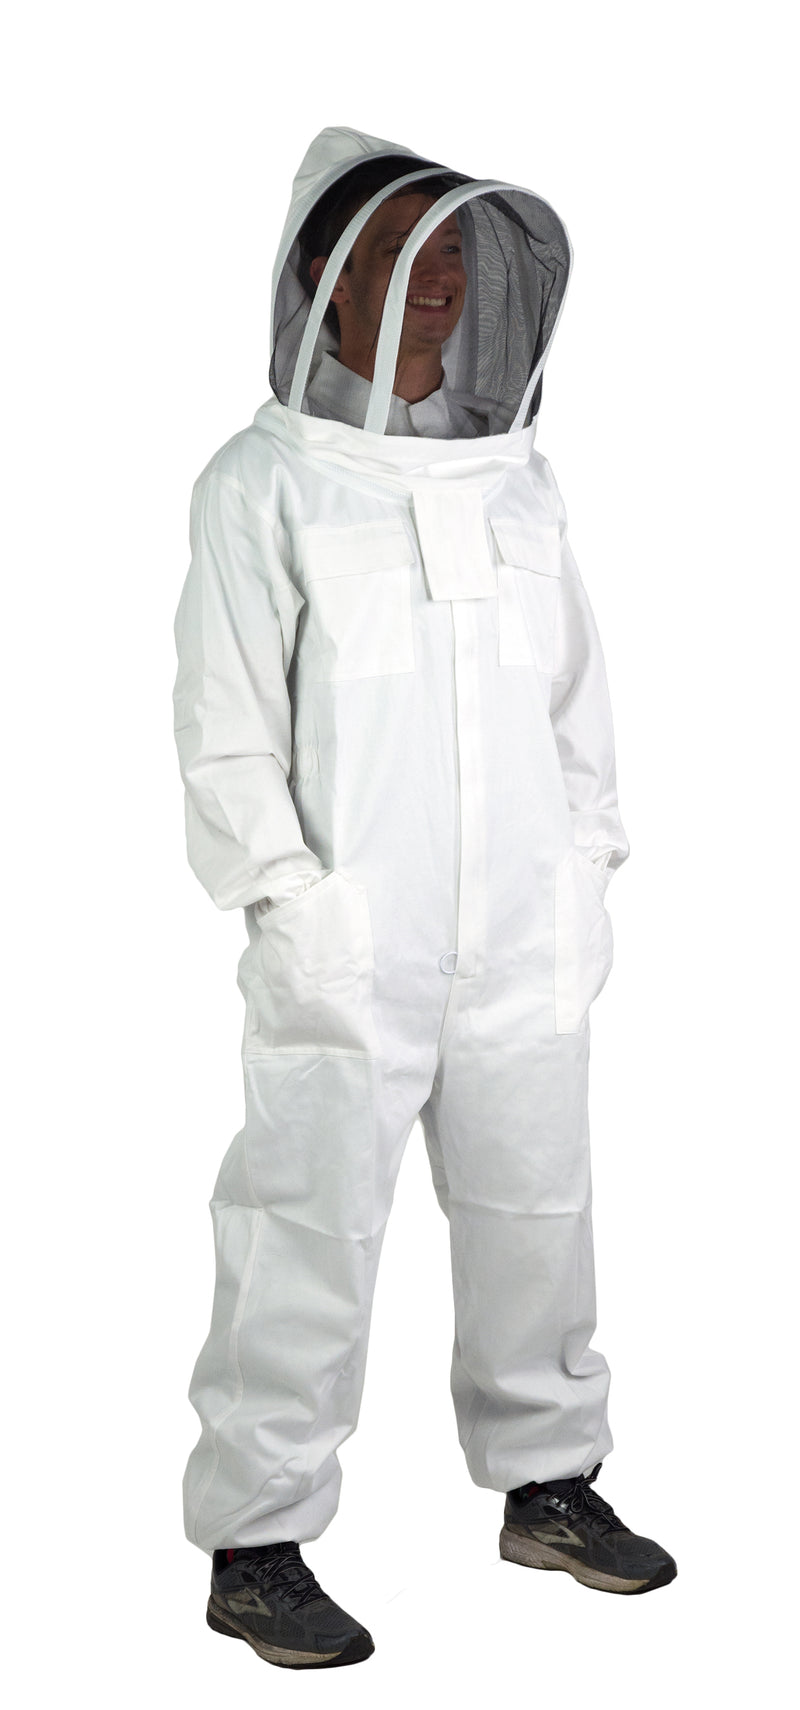 BEE-V106M <br><br>Medium Full Body Beekeeping Suit